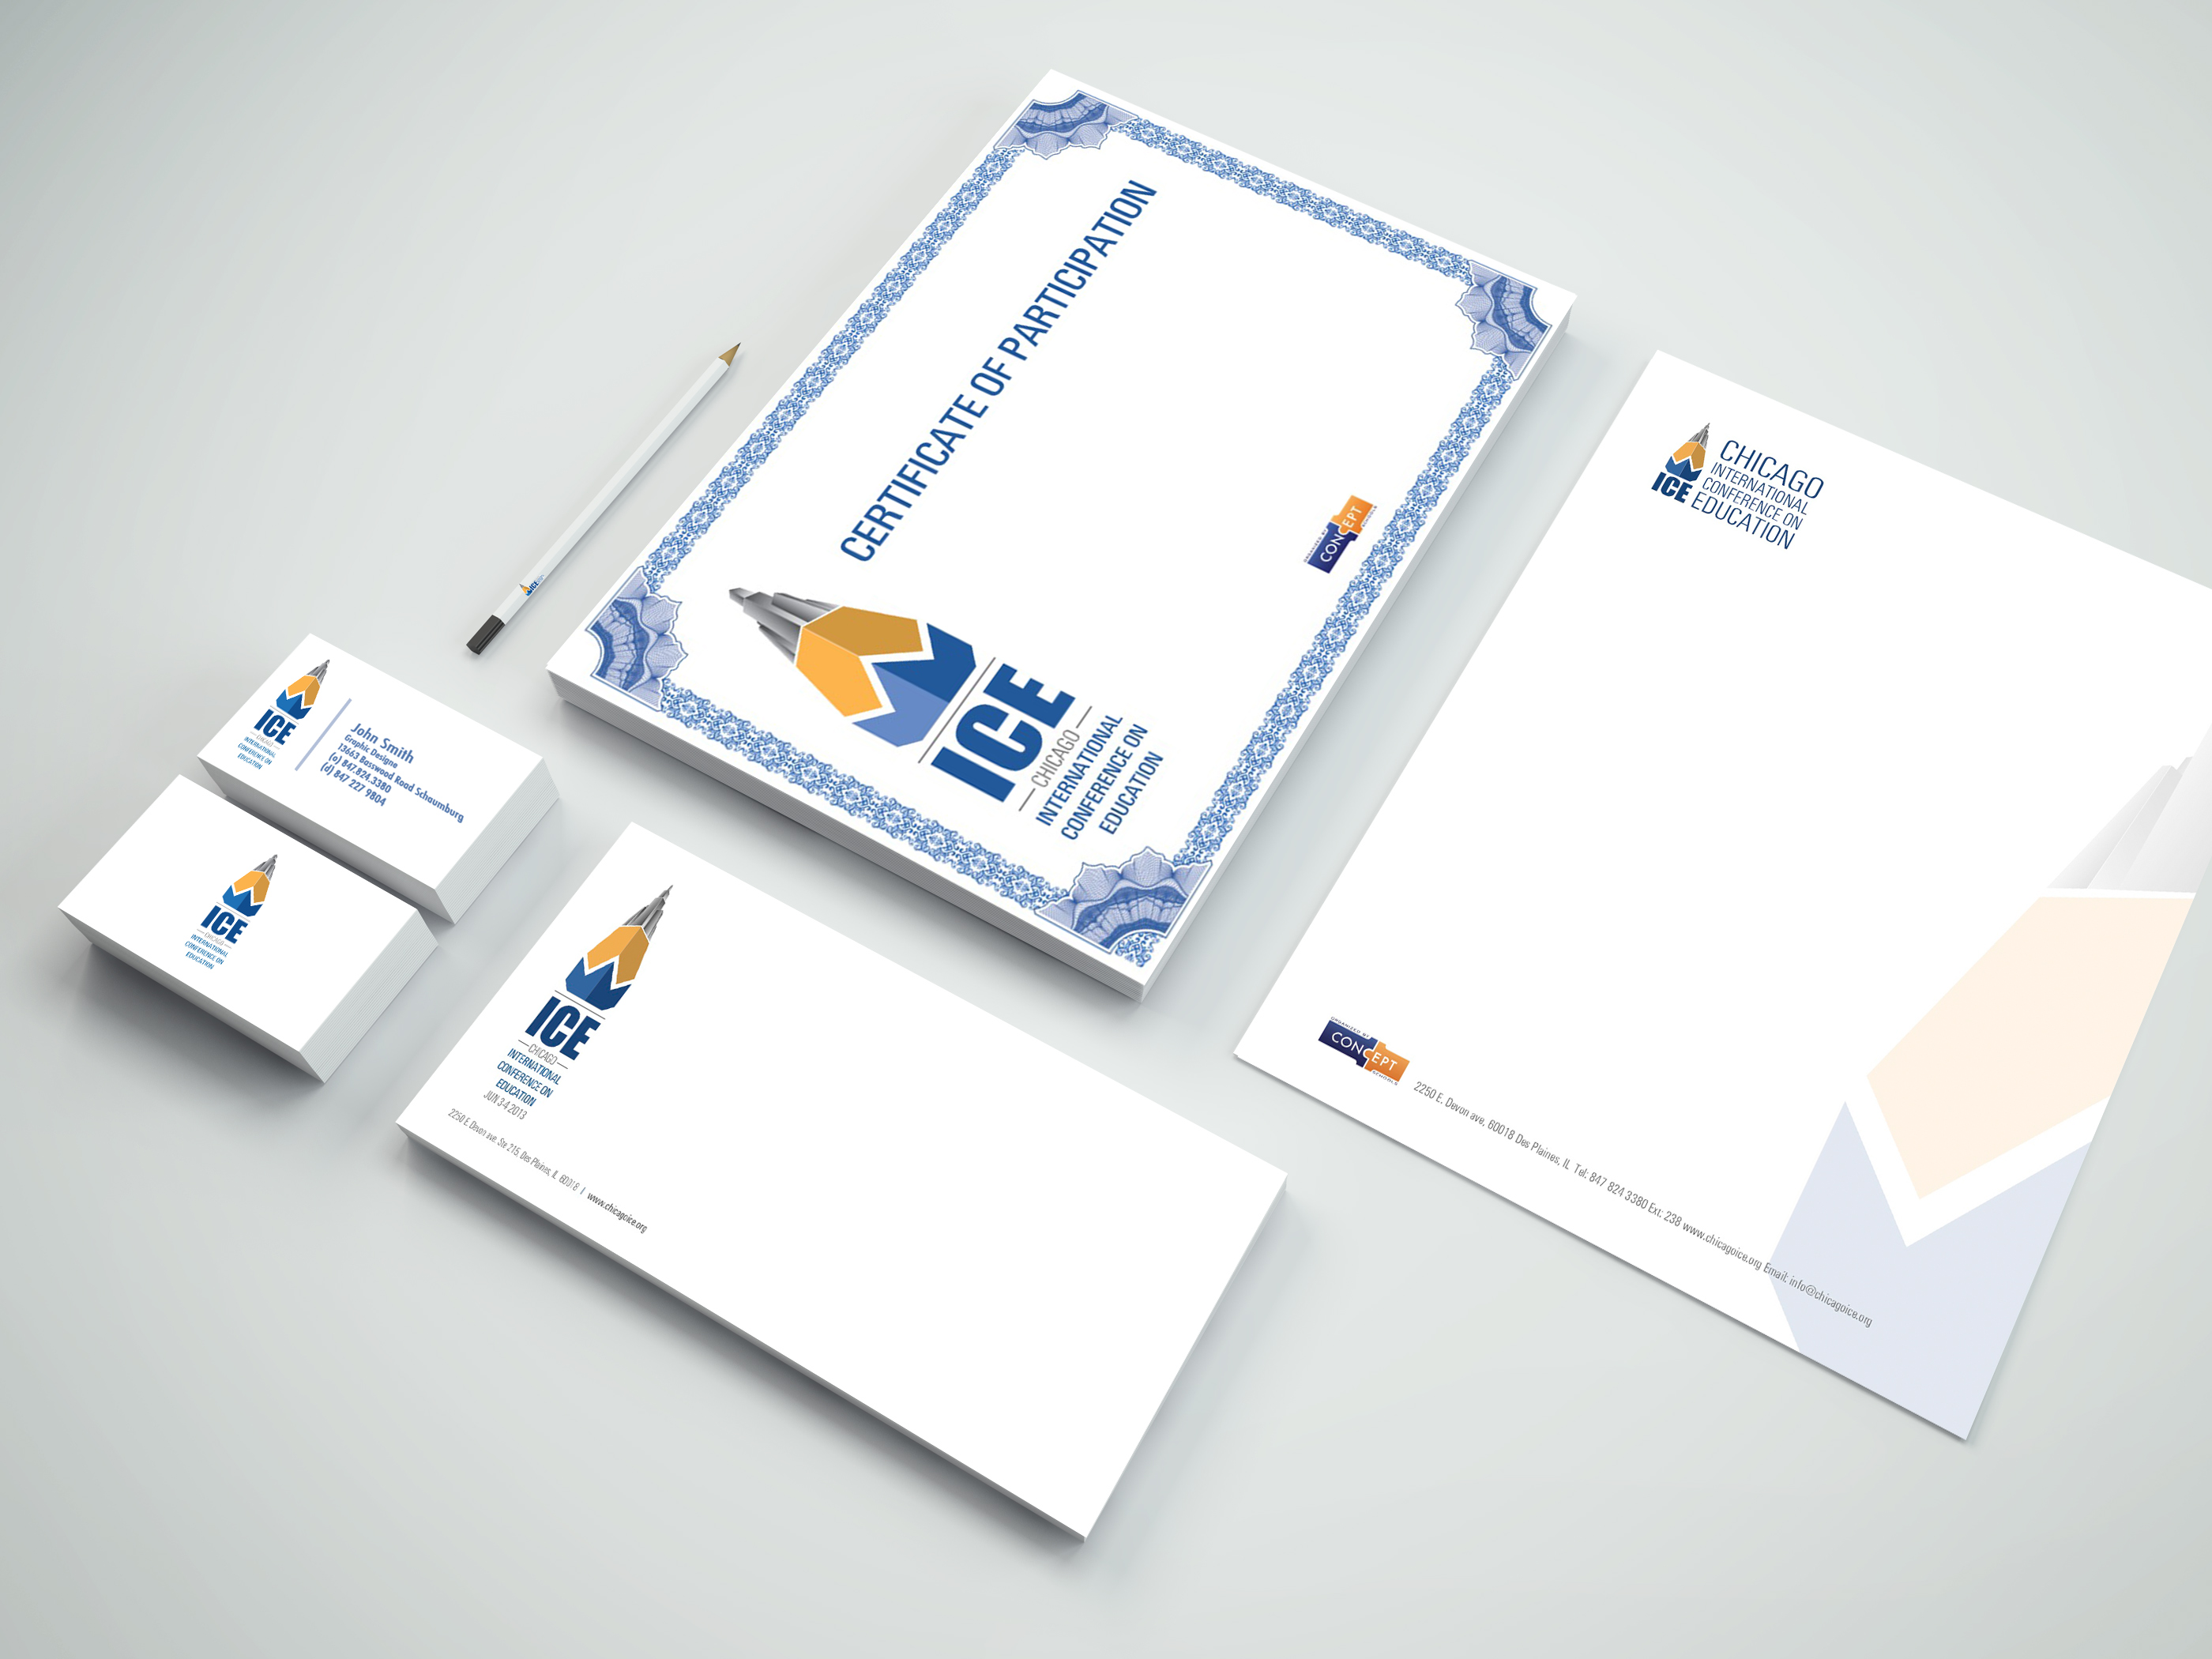 branding-stationery-mockup-vol.6